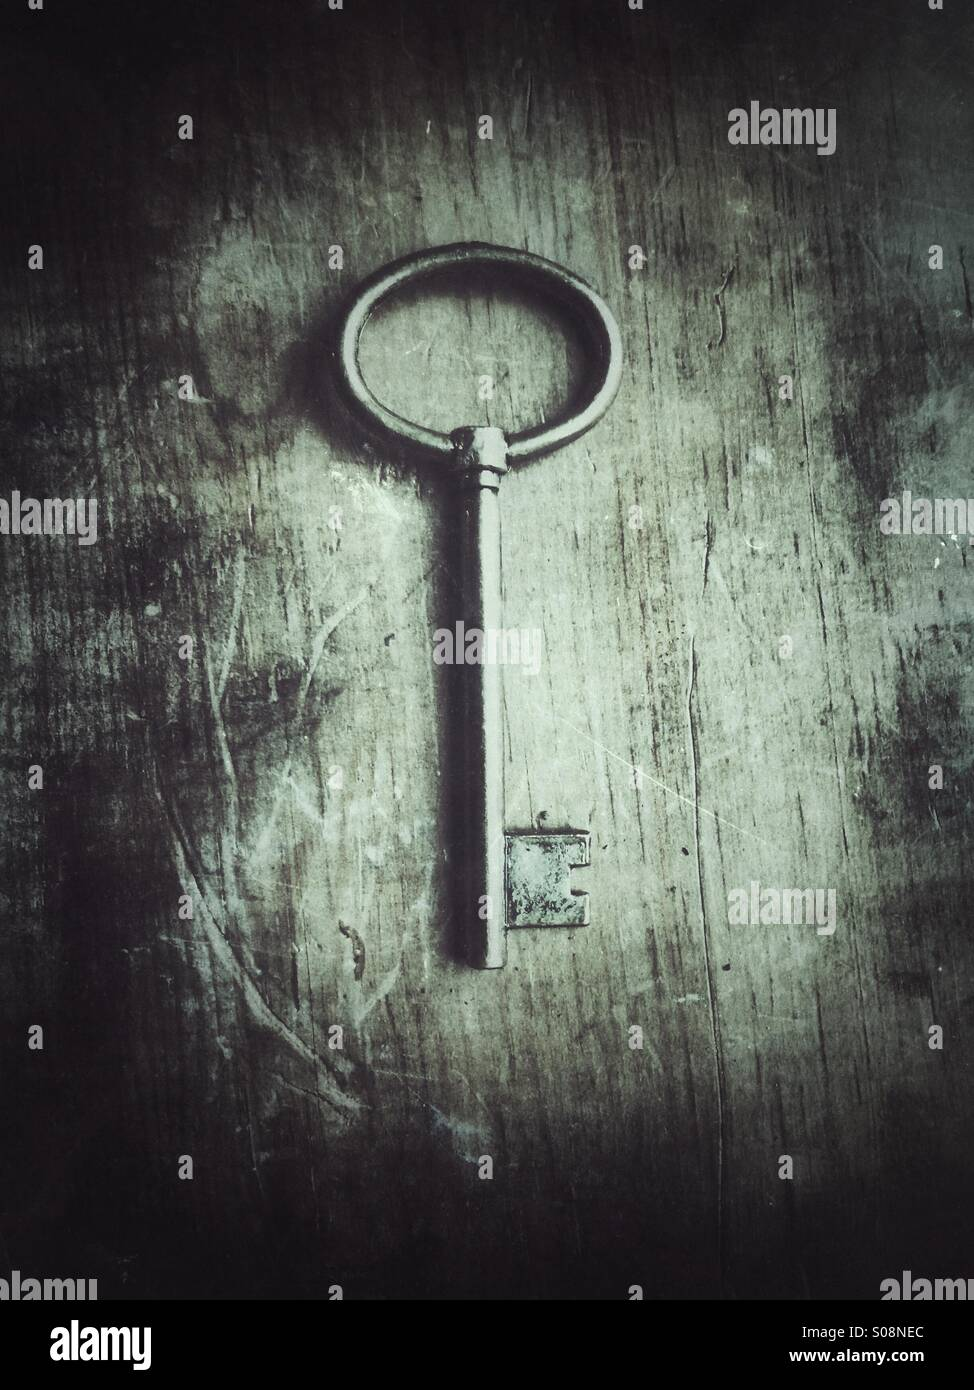 Old key - Stock Image